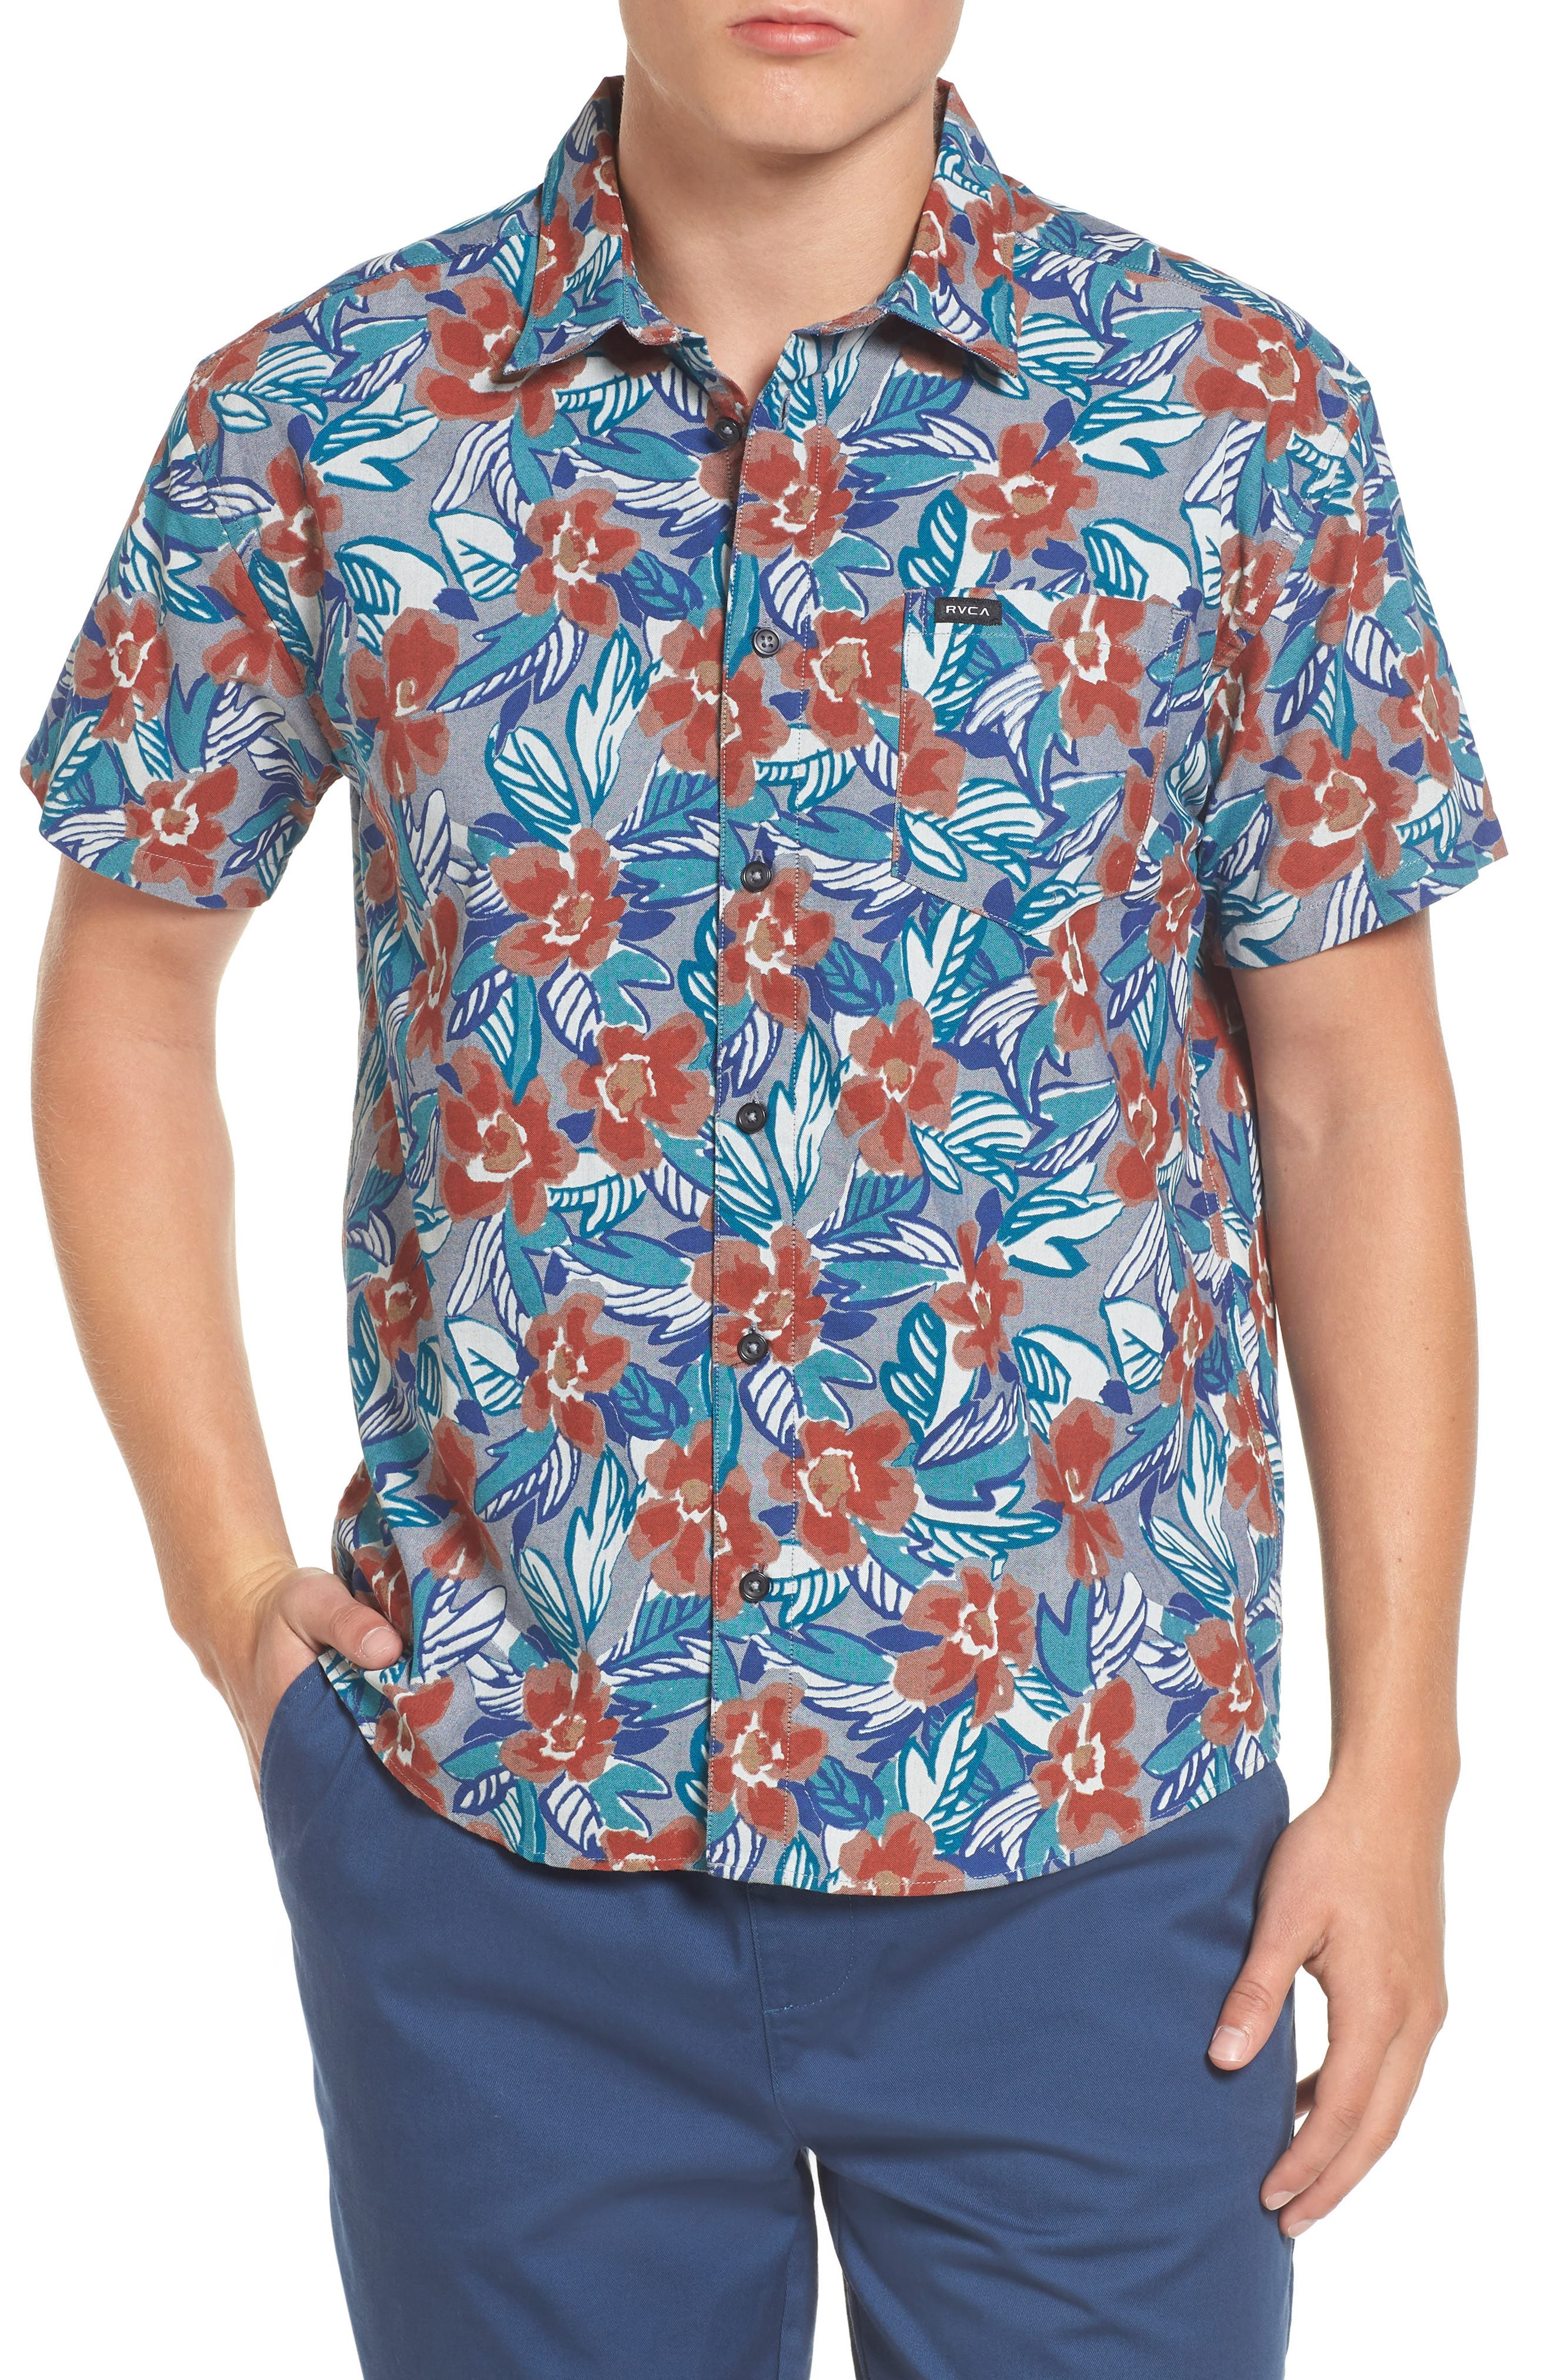 Alternate Image 1 Selected - RVCA Paradise Valley Floral Woven Shirt